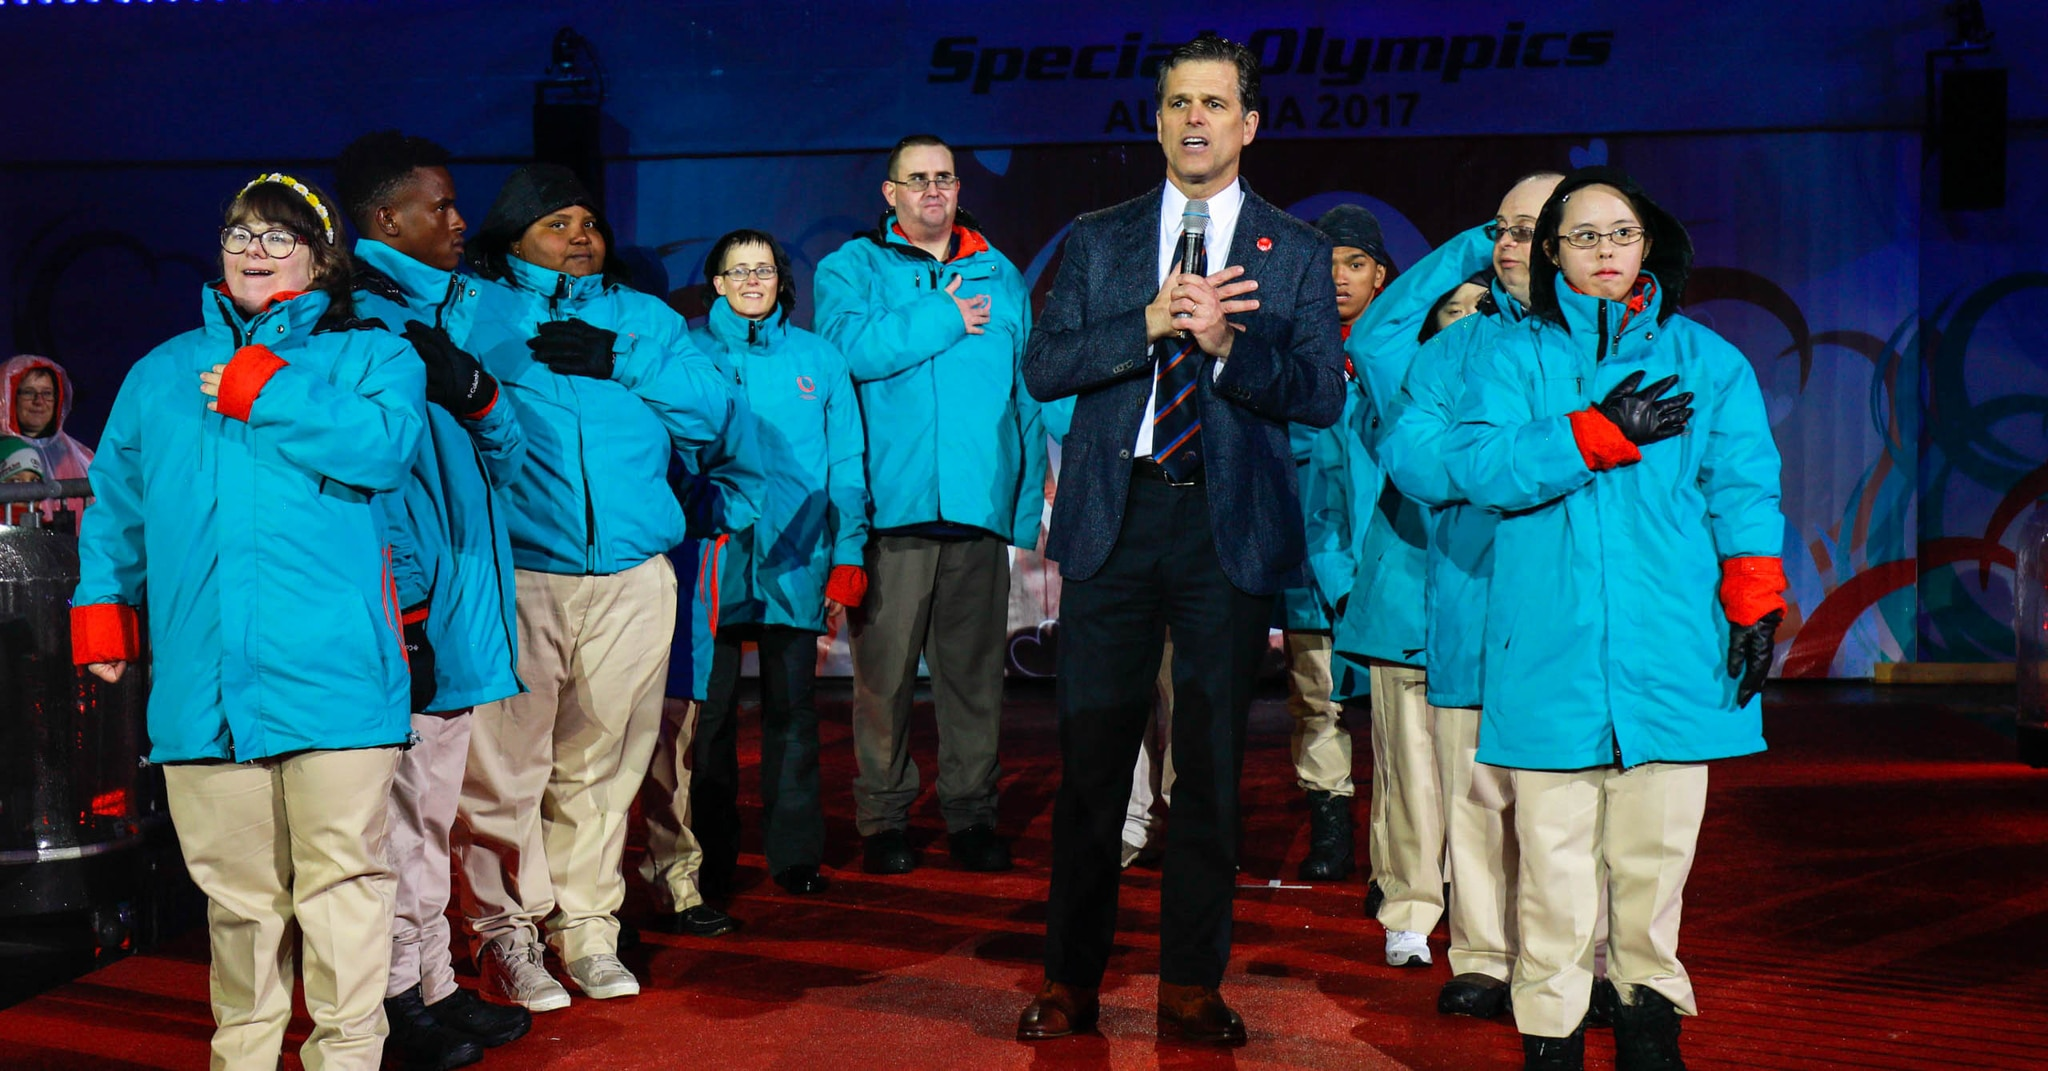 Man speaking, with athletes in winter gear around him (Special Olympics International)